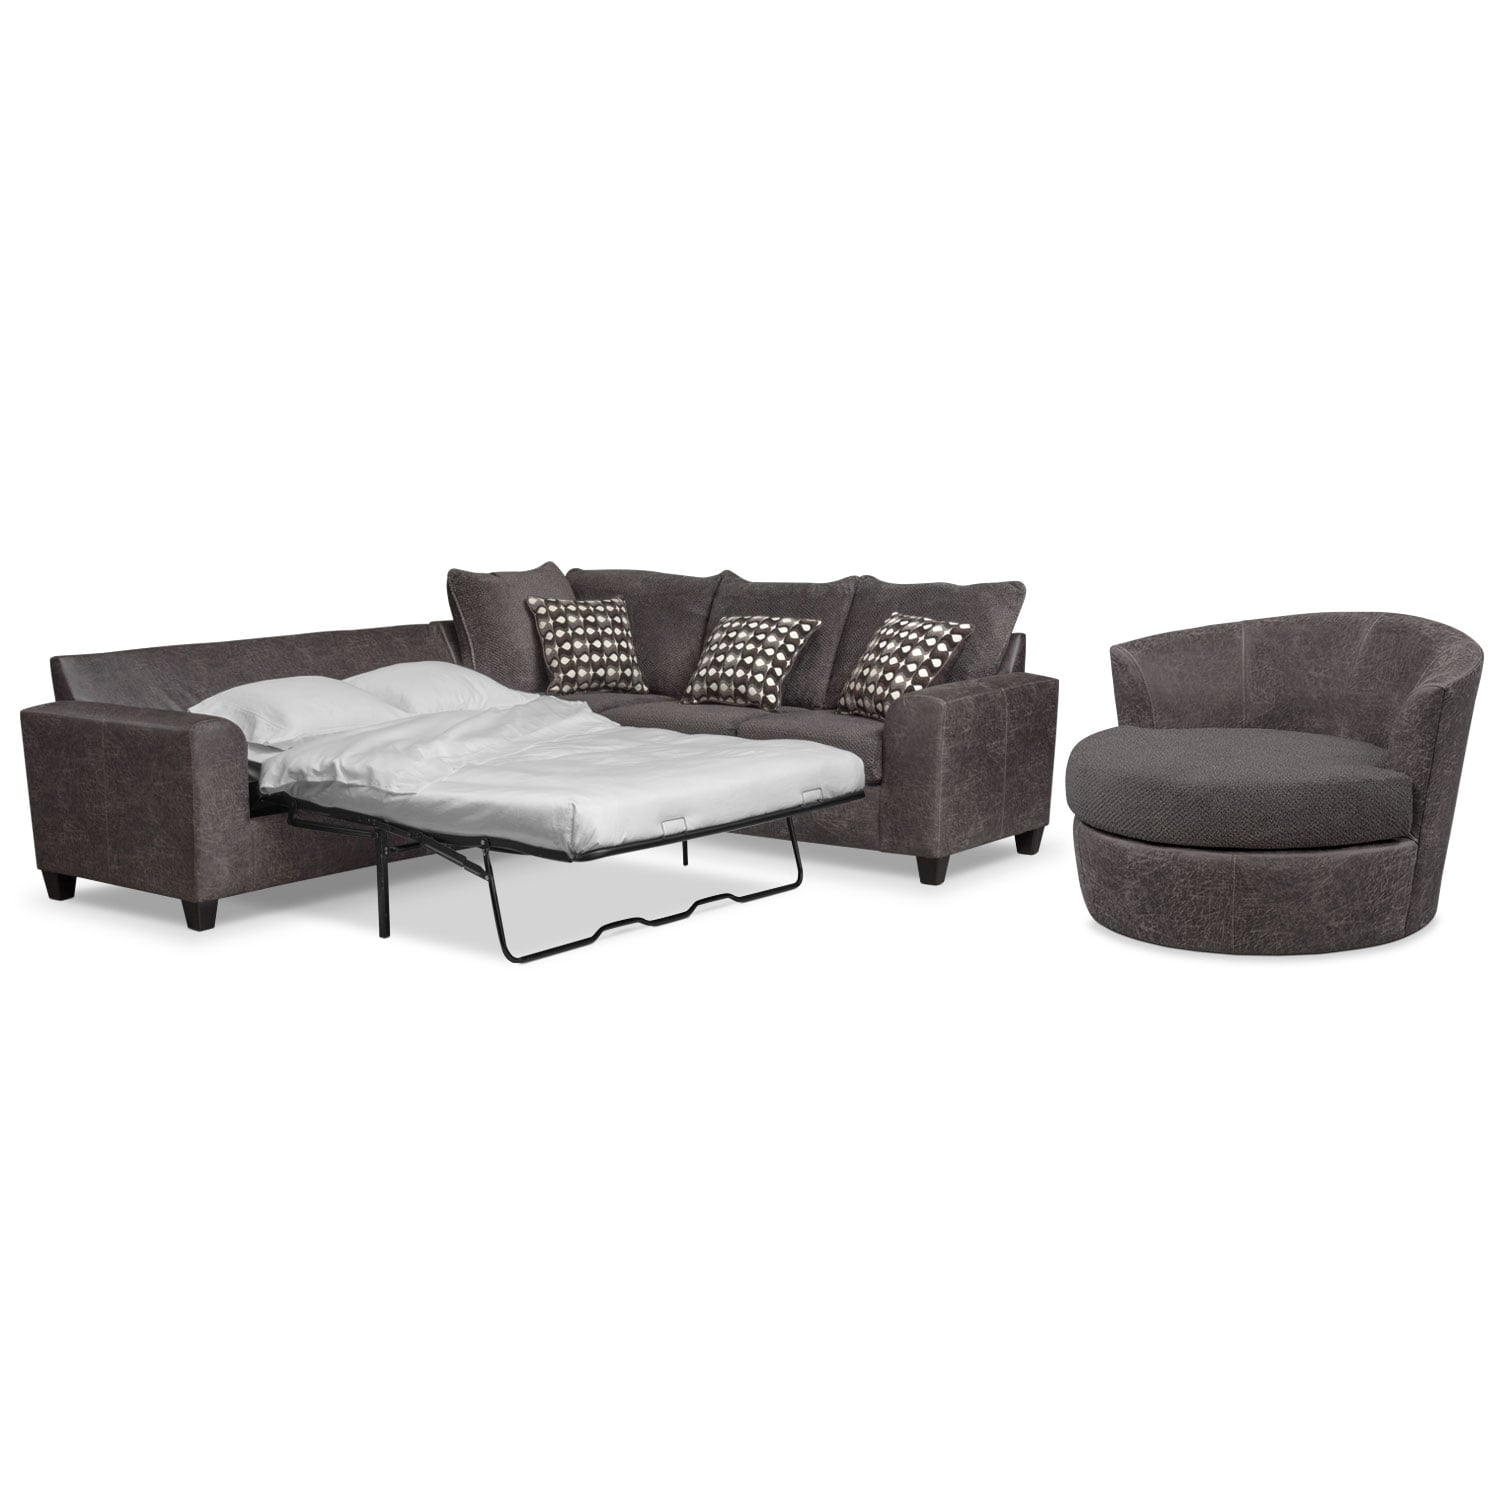 Brando 3 piece sectional with modular chaise smoke for Andrea 2 piece sleeper chaise